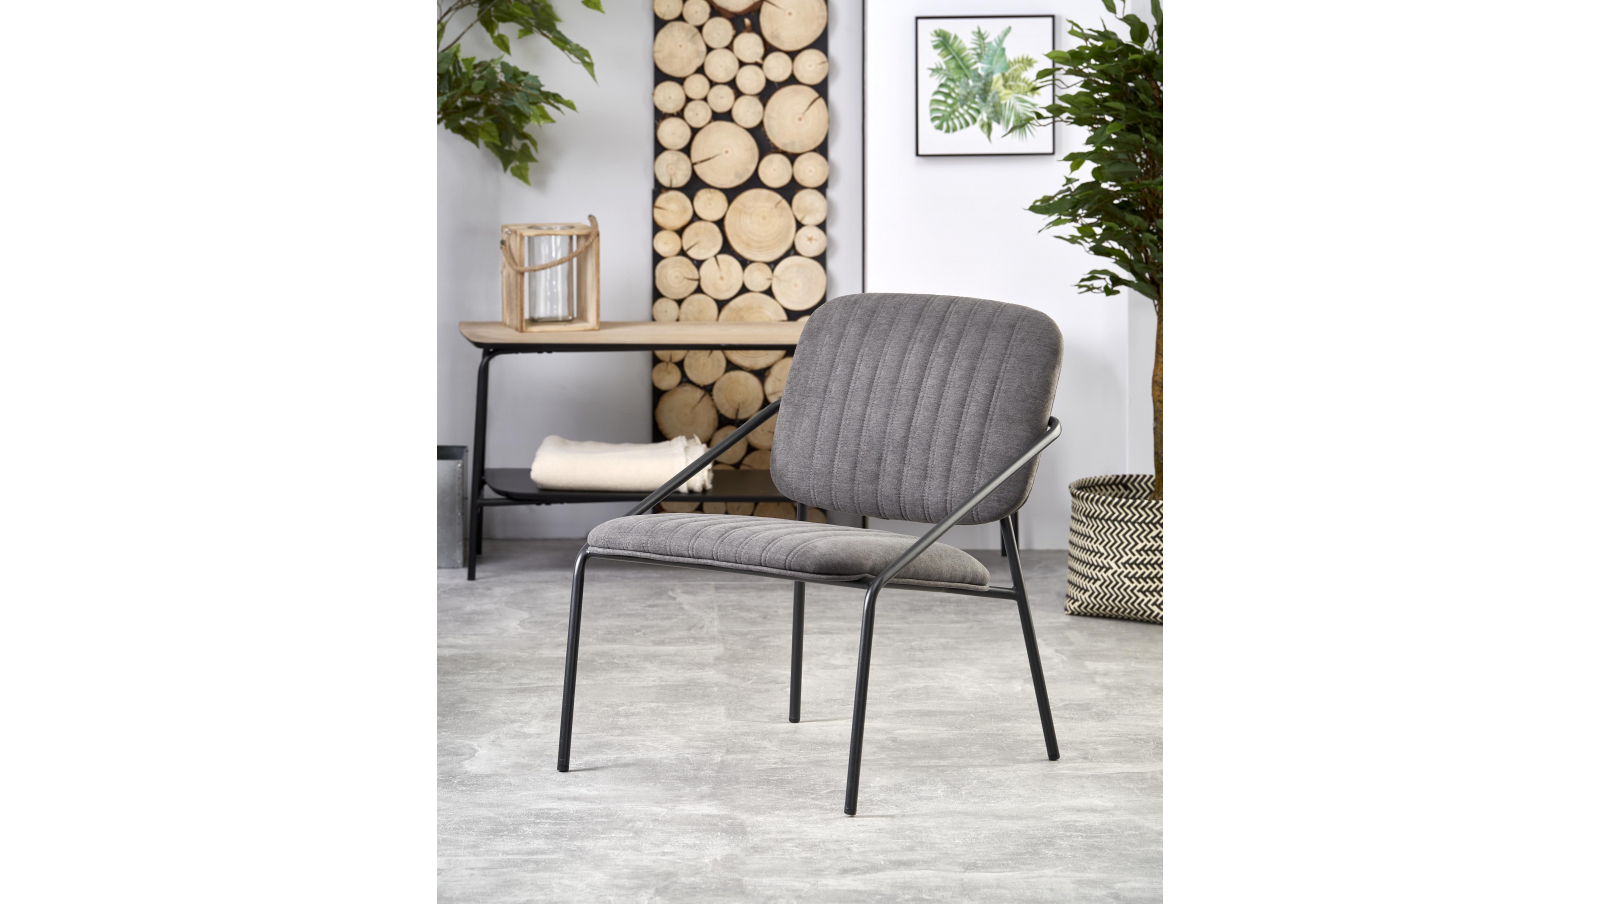 Lot De 2 Fauteuils Relax Lot De 2 Fauteuils Design Les Deals De Carellia